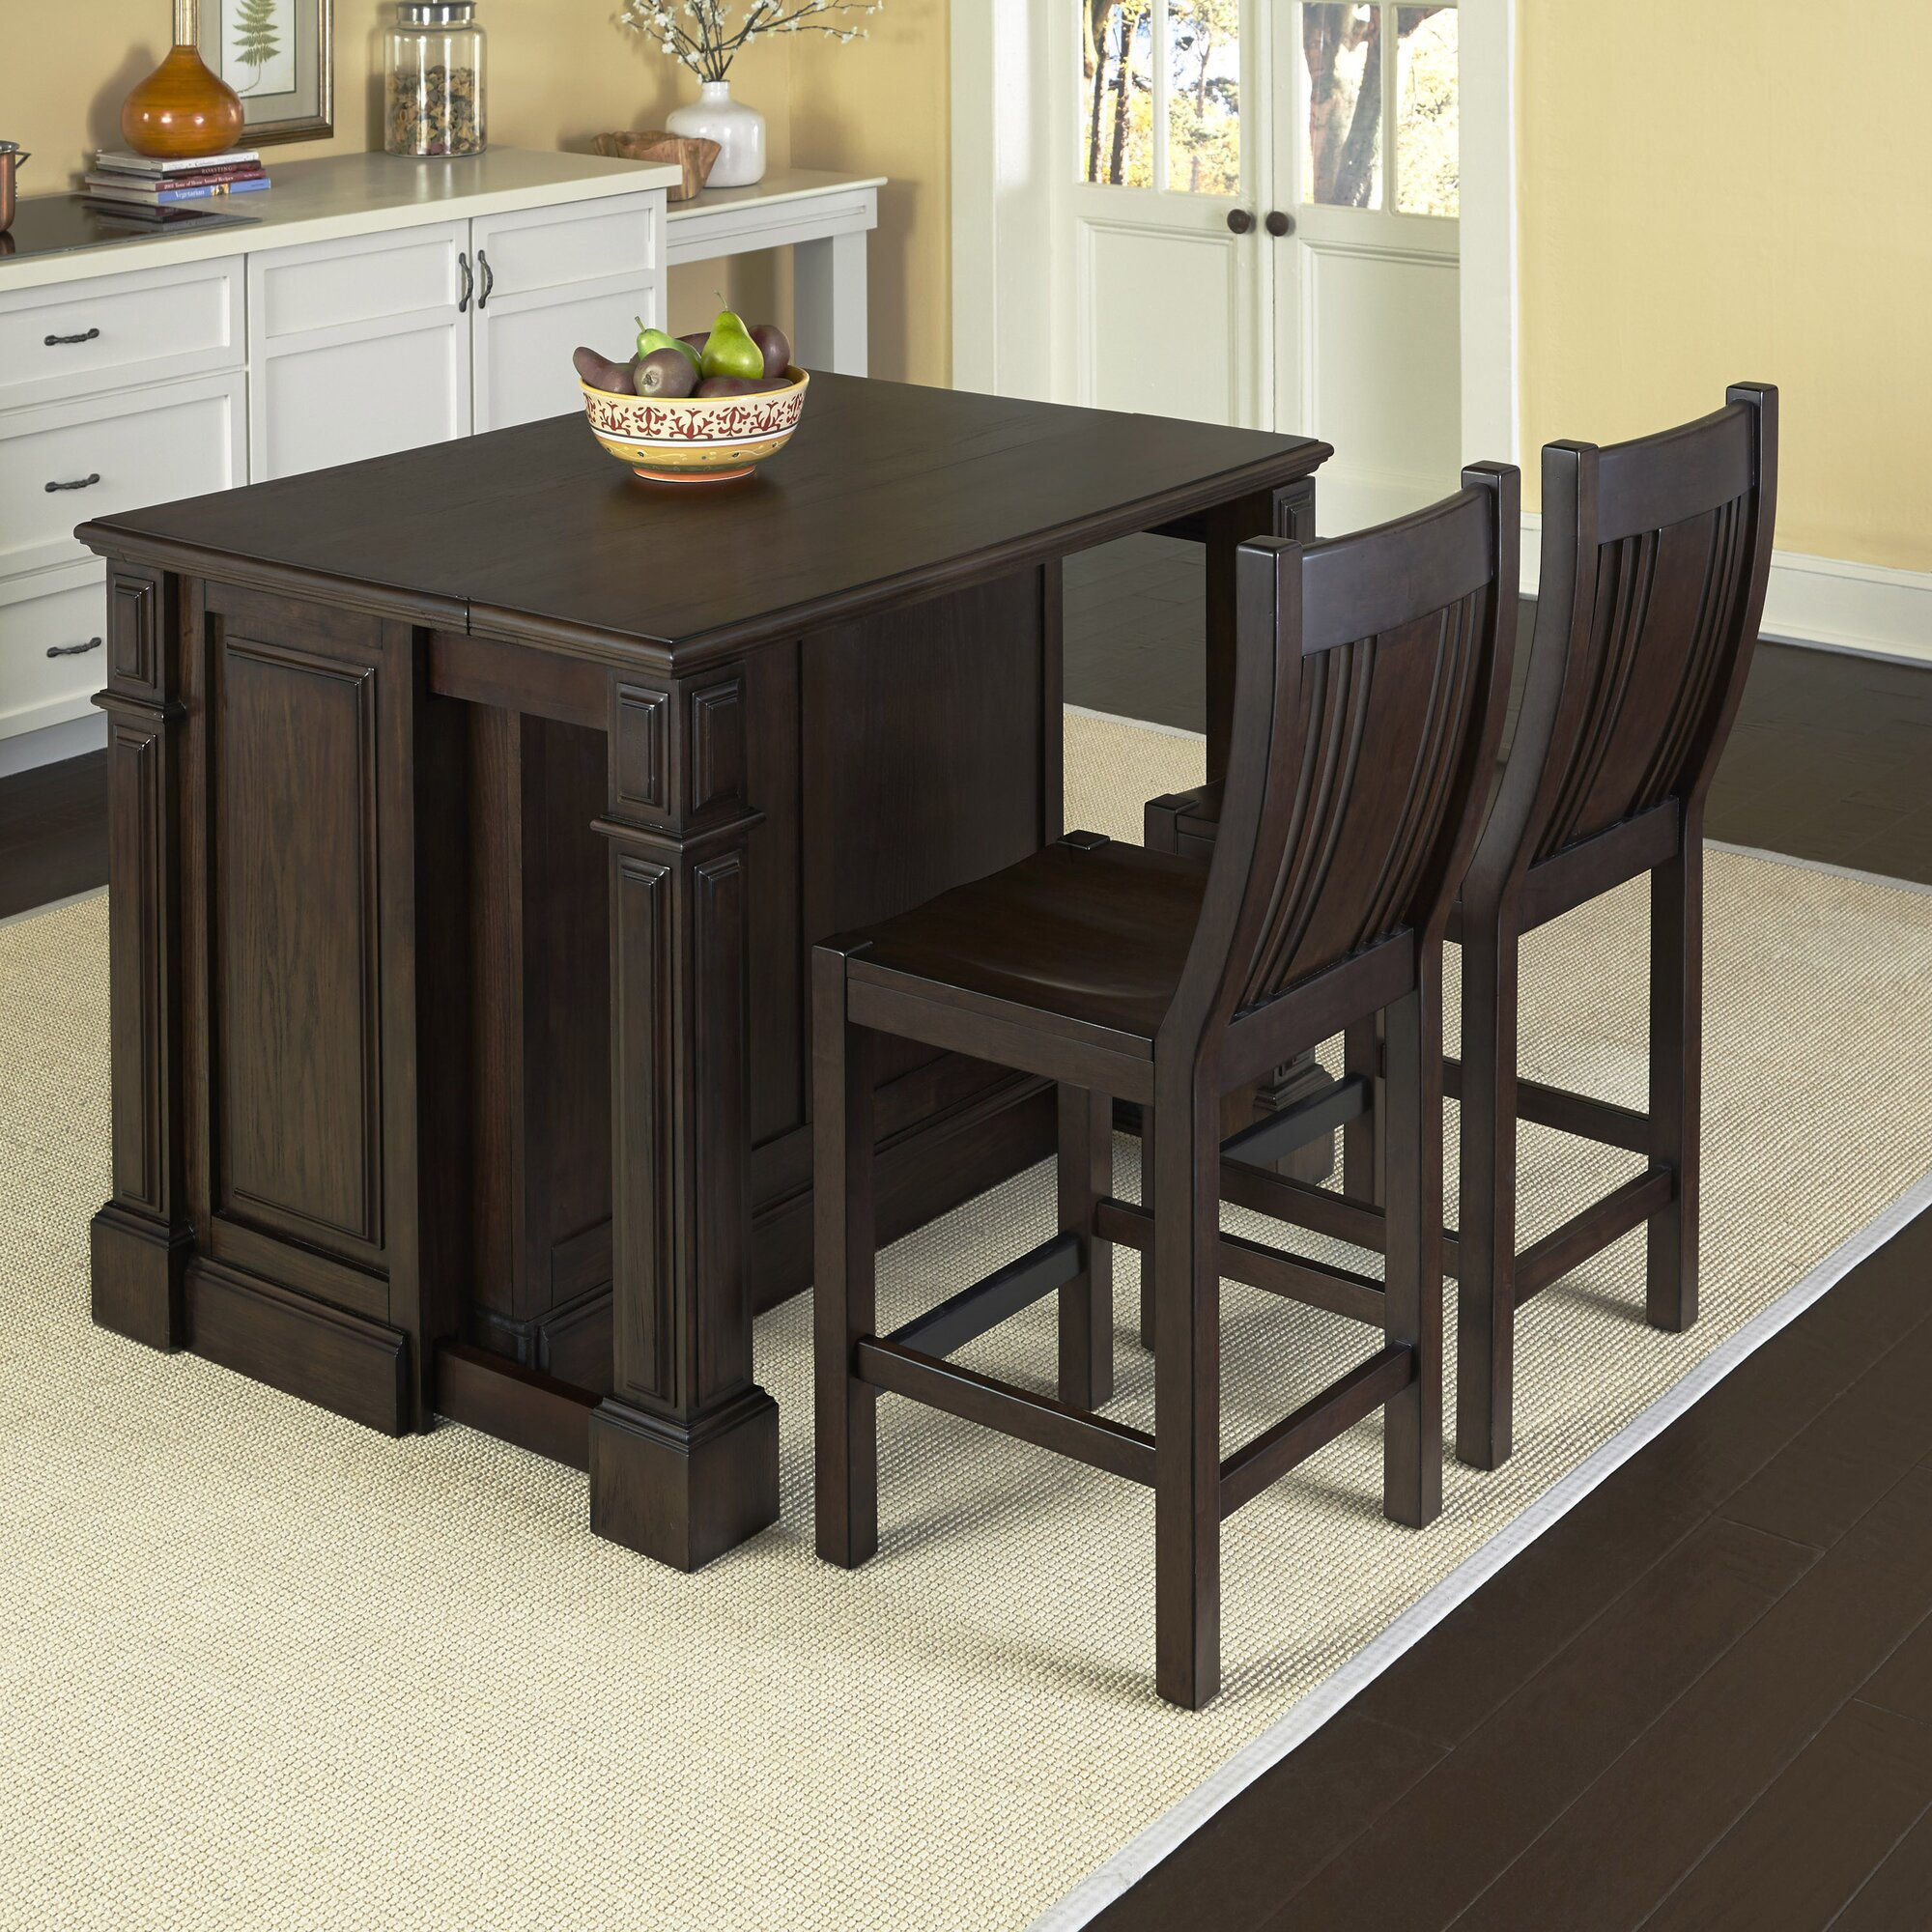 kitchen island set home styles prairie home 3 piece kitchen island set reviews wayfair 3917